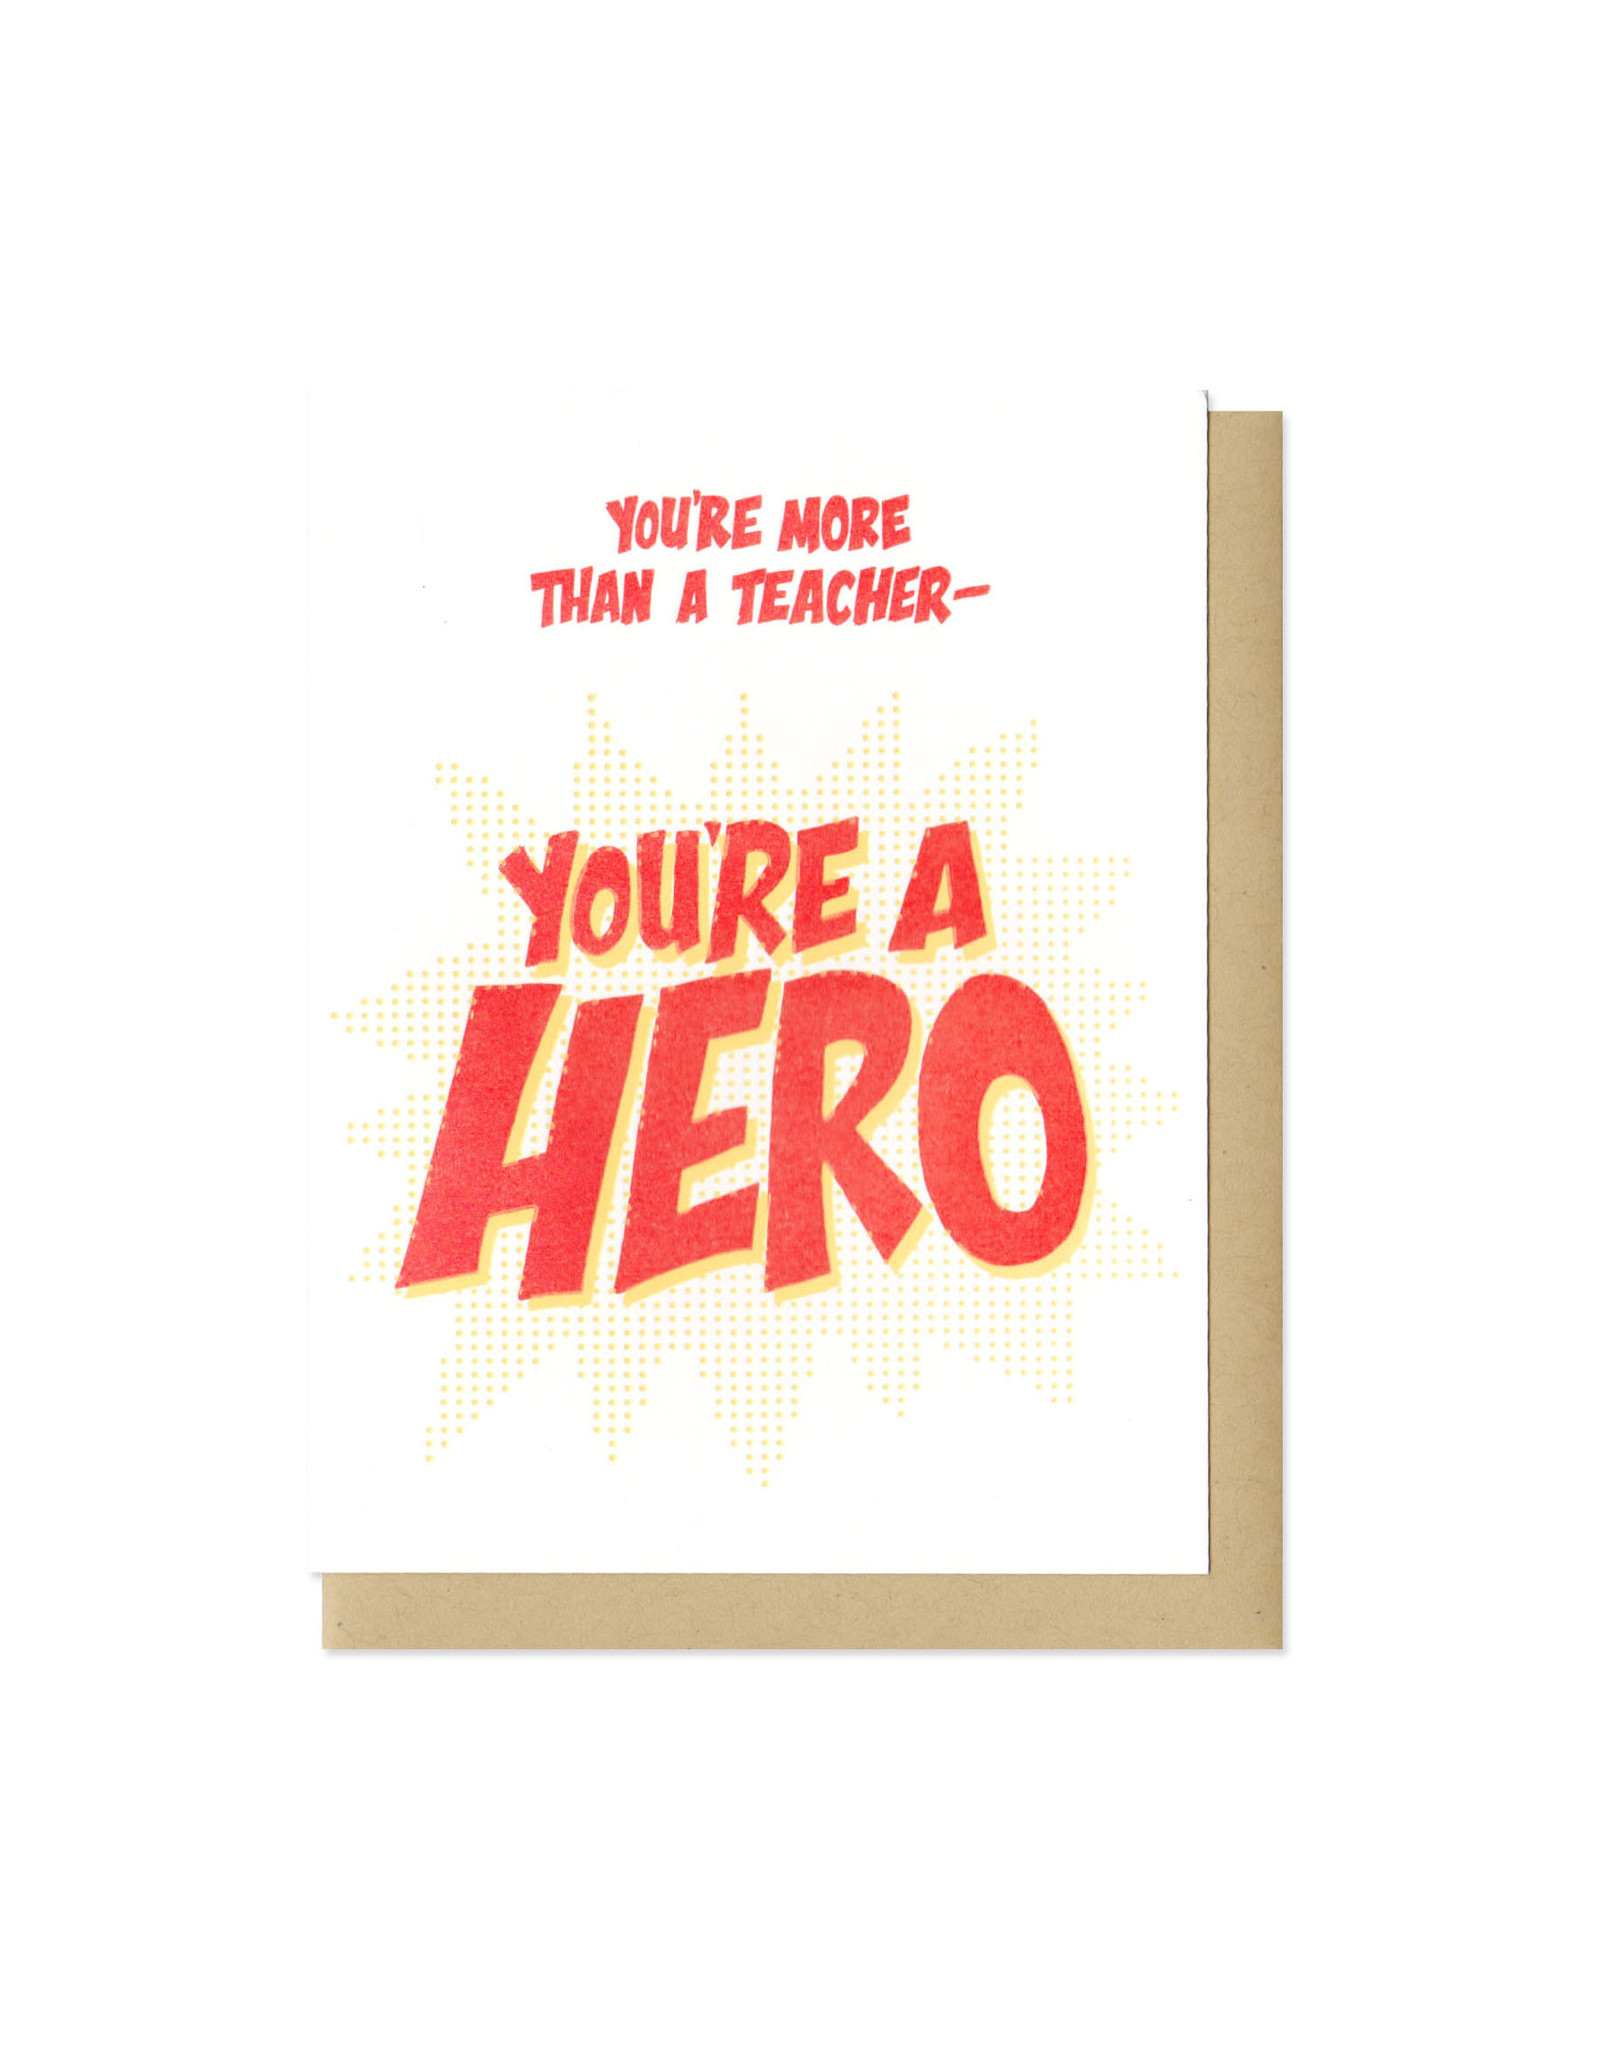 You're More Than a Teacher - You're a Hero Greeting Card